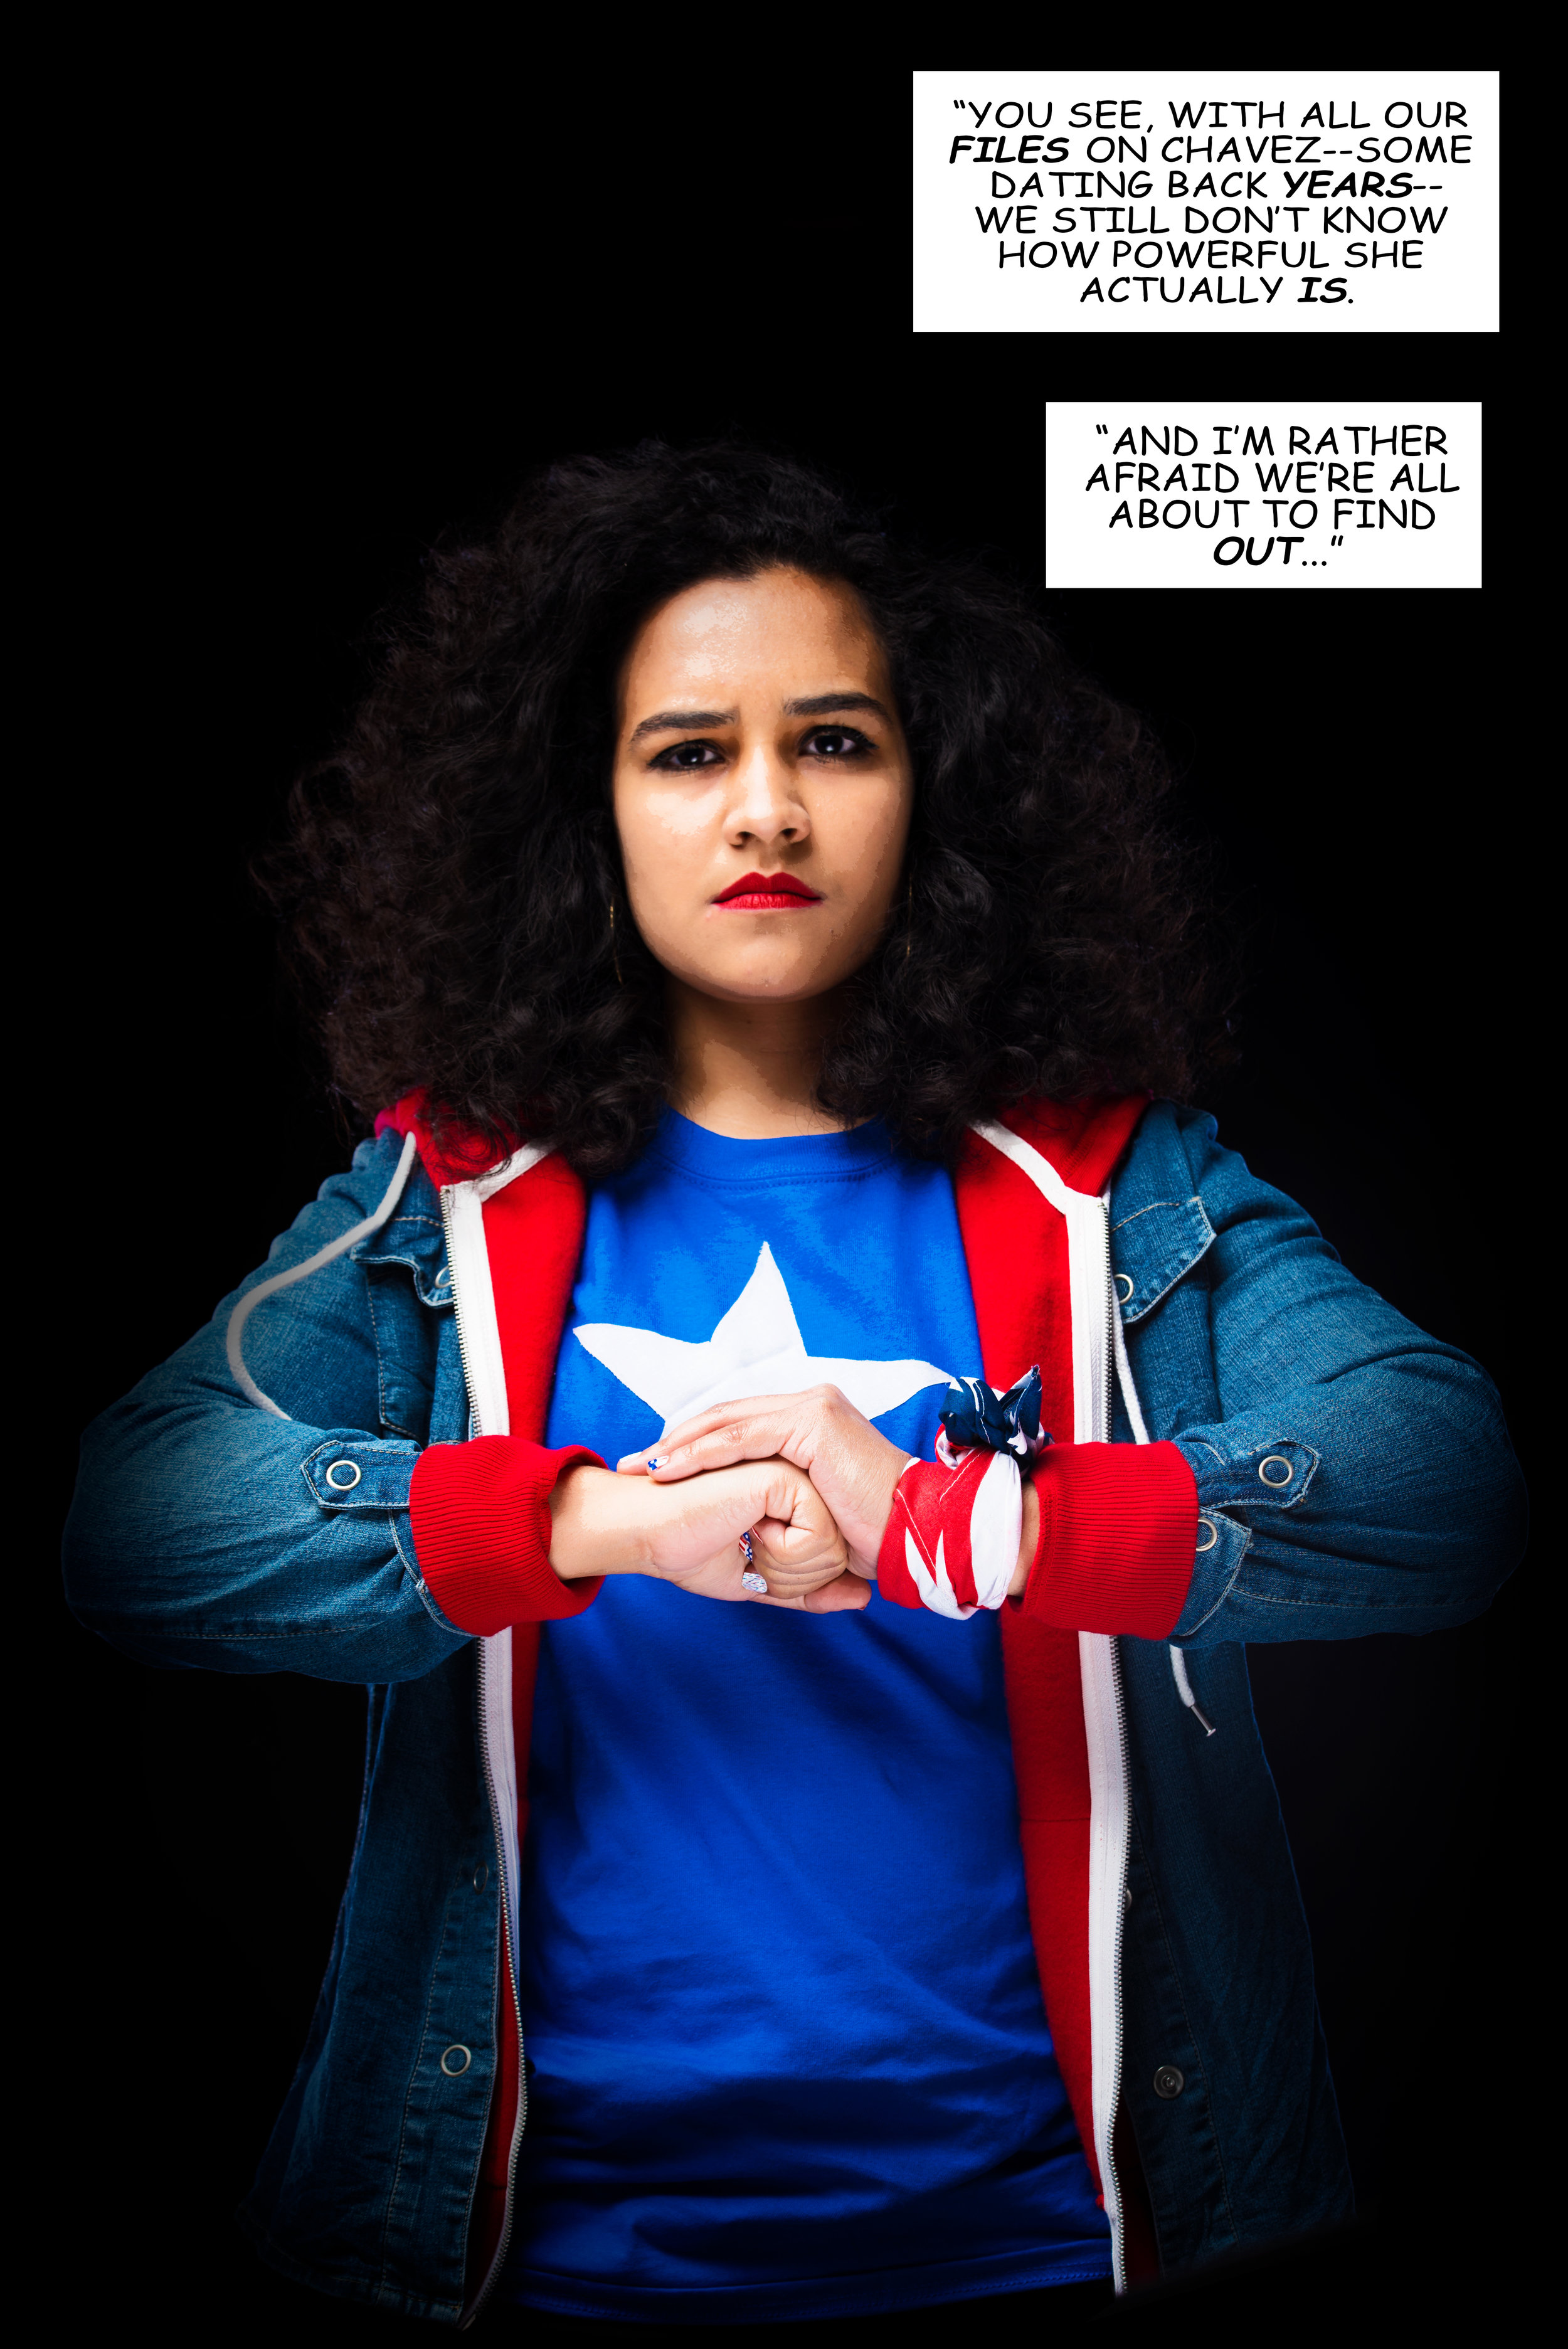 America Chavez Cosplay Comic Cover by Maacah Davis